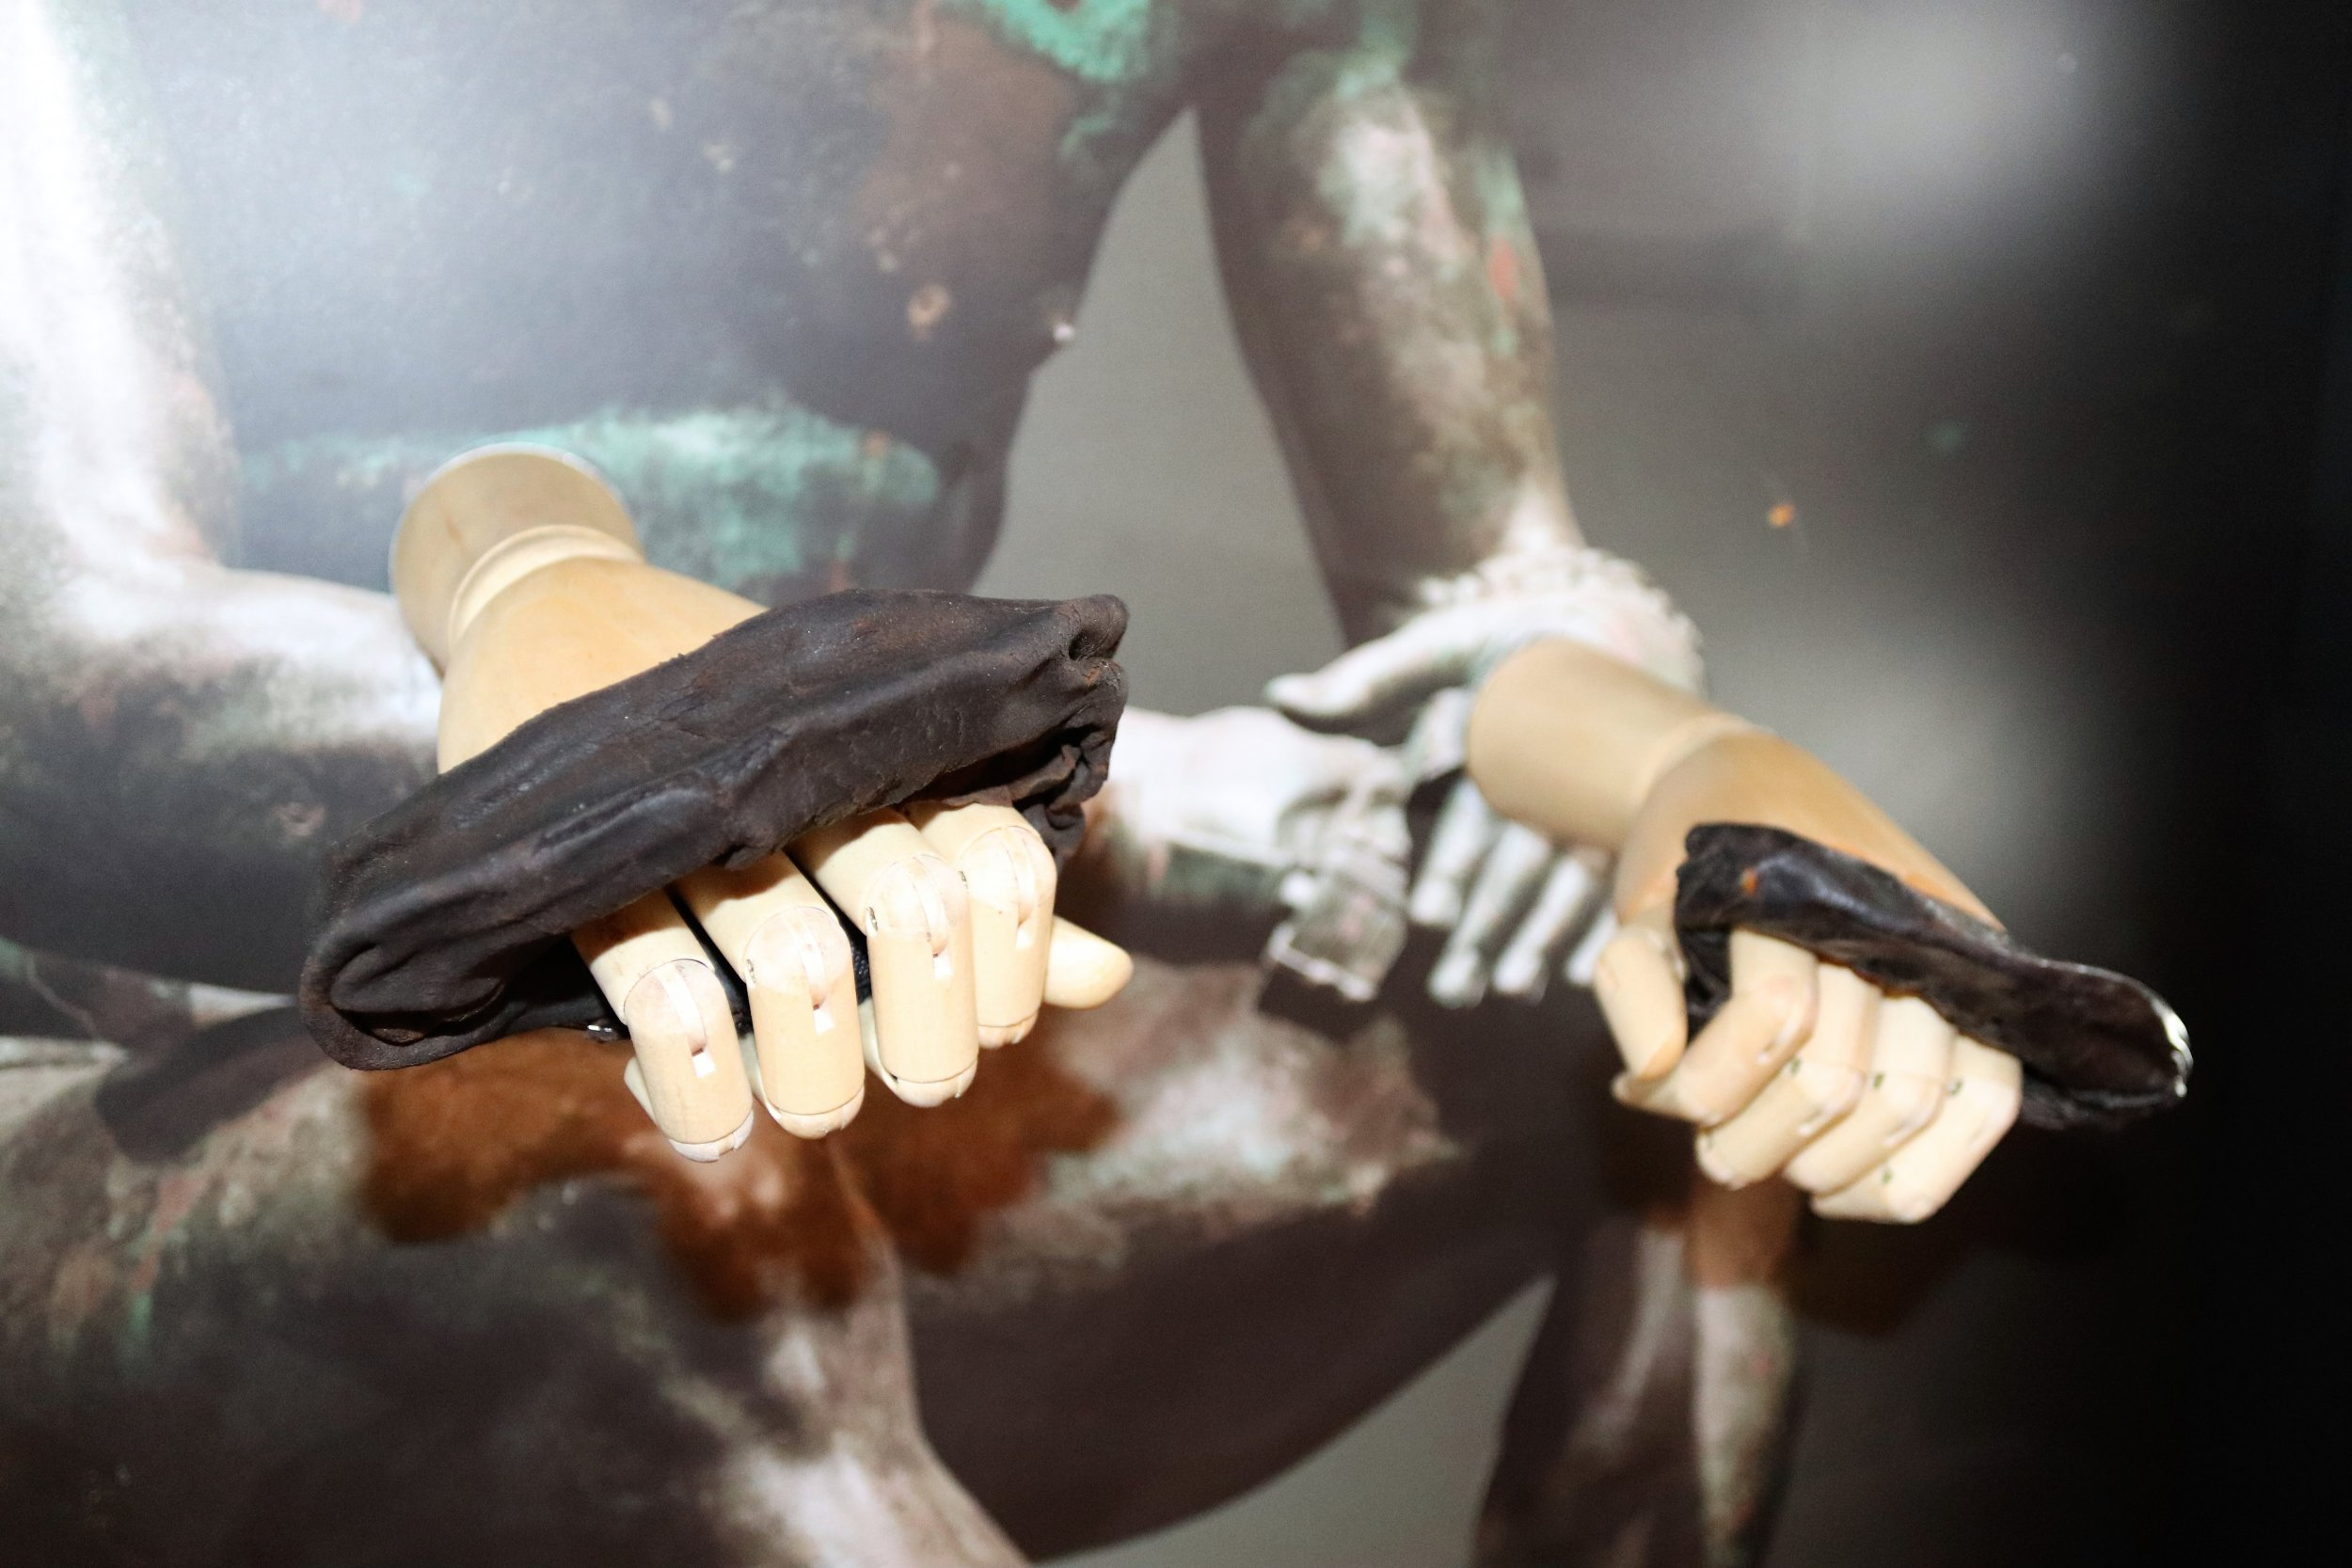 Roman Boxing Gloves on Hands (c) TheVindolanda Trust